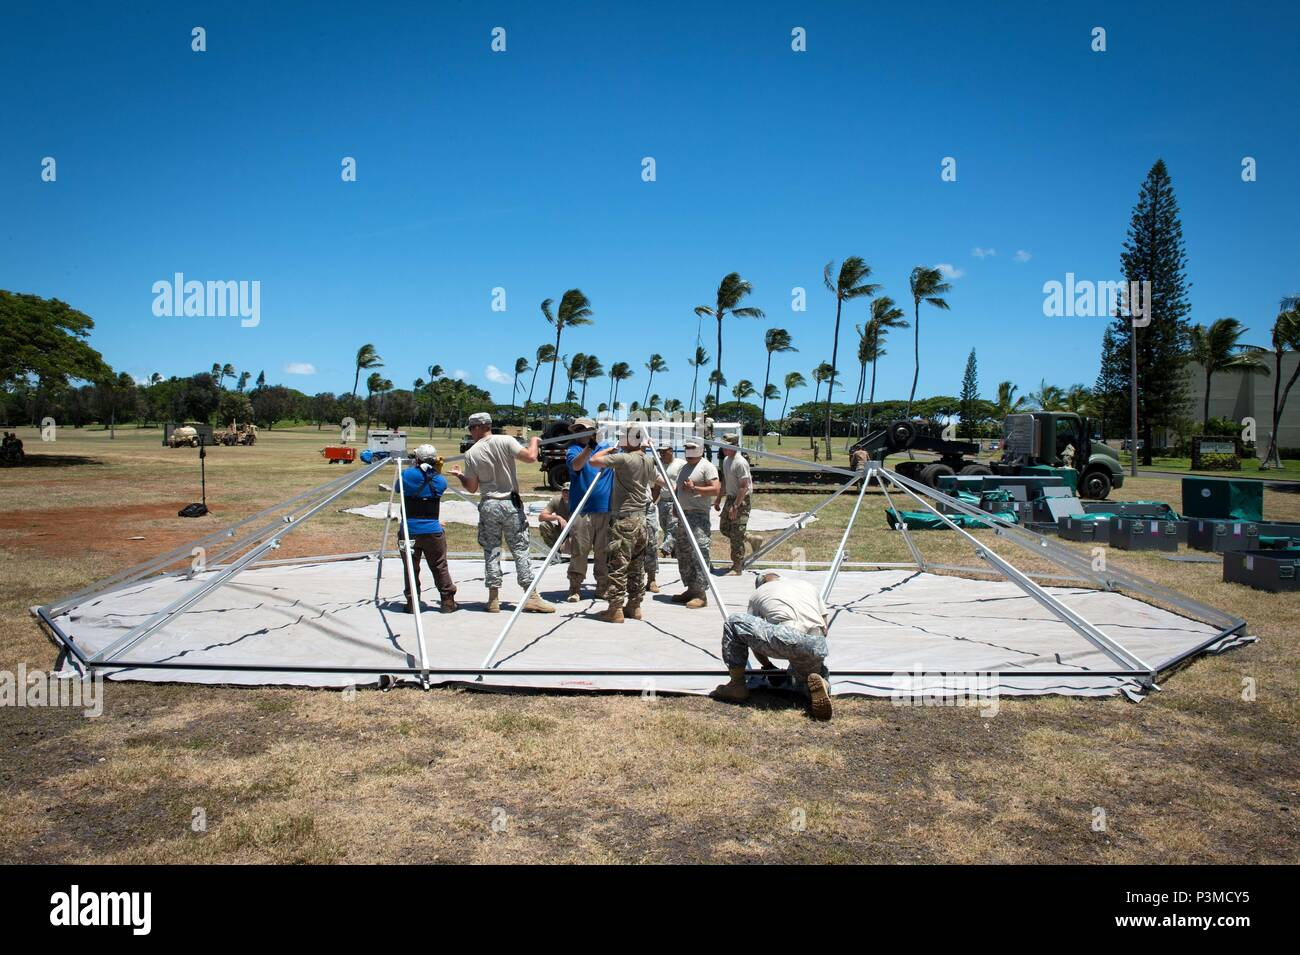 160712-N-SI773-157 FORD ISLAND, HAWAII (July 12, 2016) U.S. Army Soldiers assigned to 445th Civil Affairs Battalion setup a field hospital for Rim of the Pacific 2016. Twenty-six nations, more than 40 ships and submarines, more than 200 aircraft, and 25,000 personnel are participating in RIMPAC from June 30 to Aug. 4, in and around the Hawaiian Islands and Southern California. The world's largest international maritime exercise, RIMPAC provides a unique training opportunity that helps participants foster and sustain the cooperative relationships that are critical to ensuring the safety of sea  Stock Photo